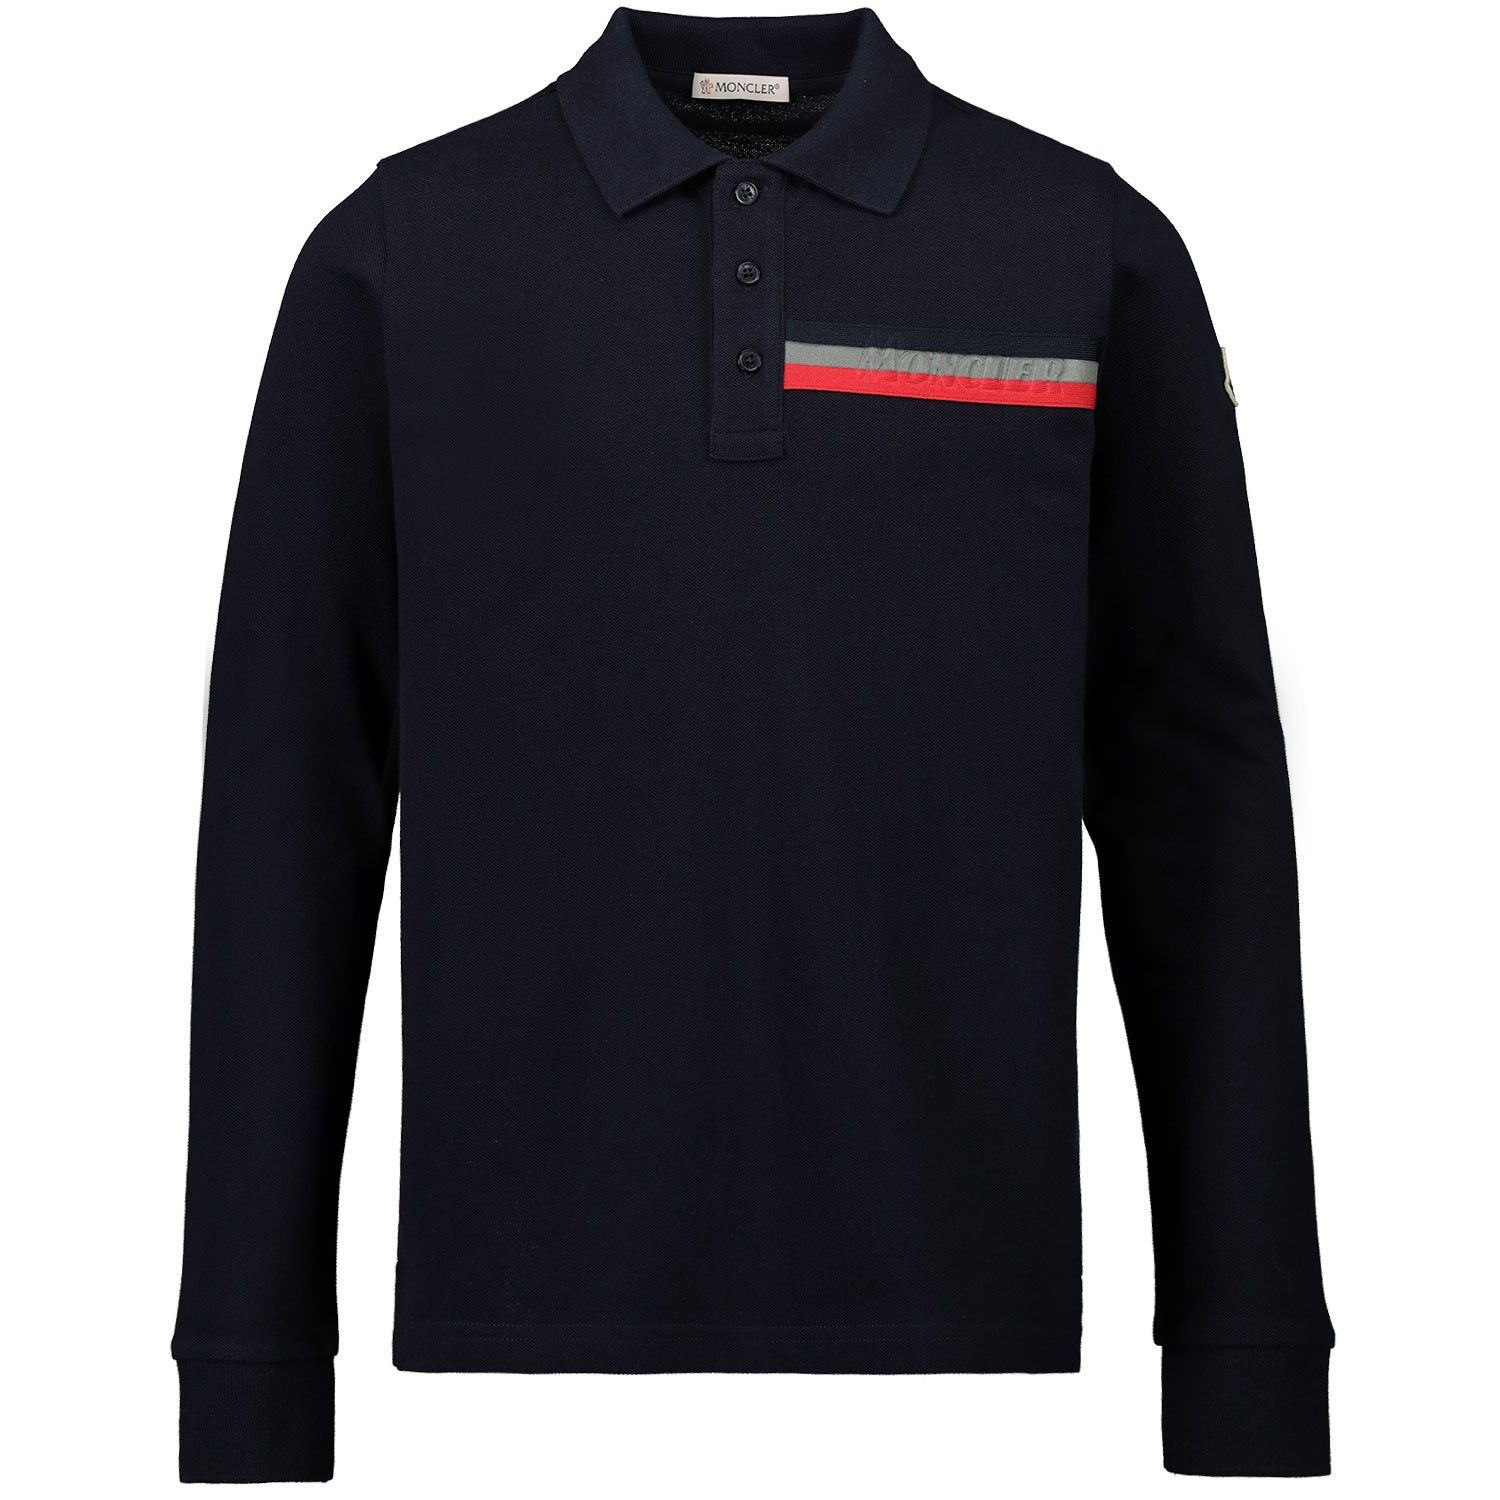 Picture of Moncler 8B70120 kids polo shirt navy